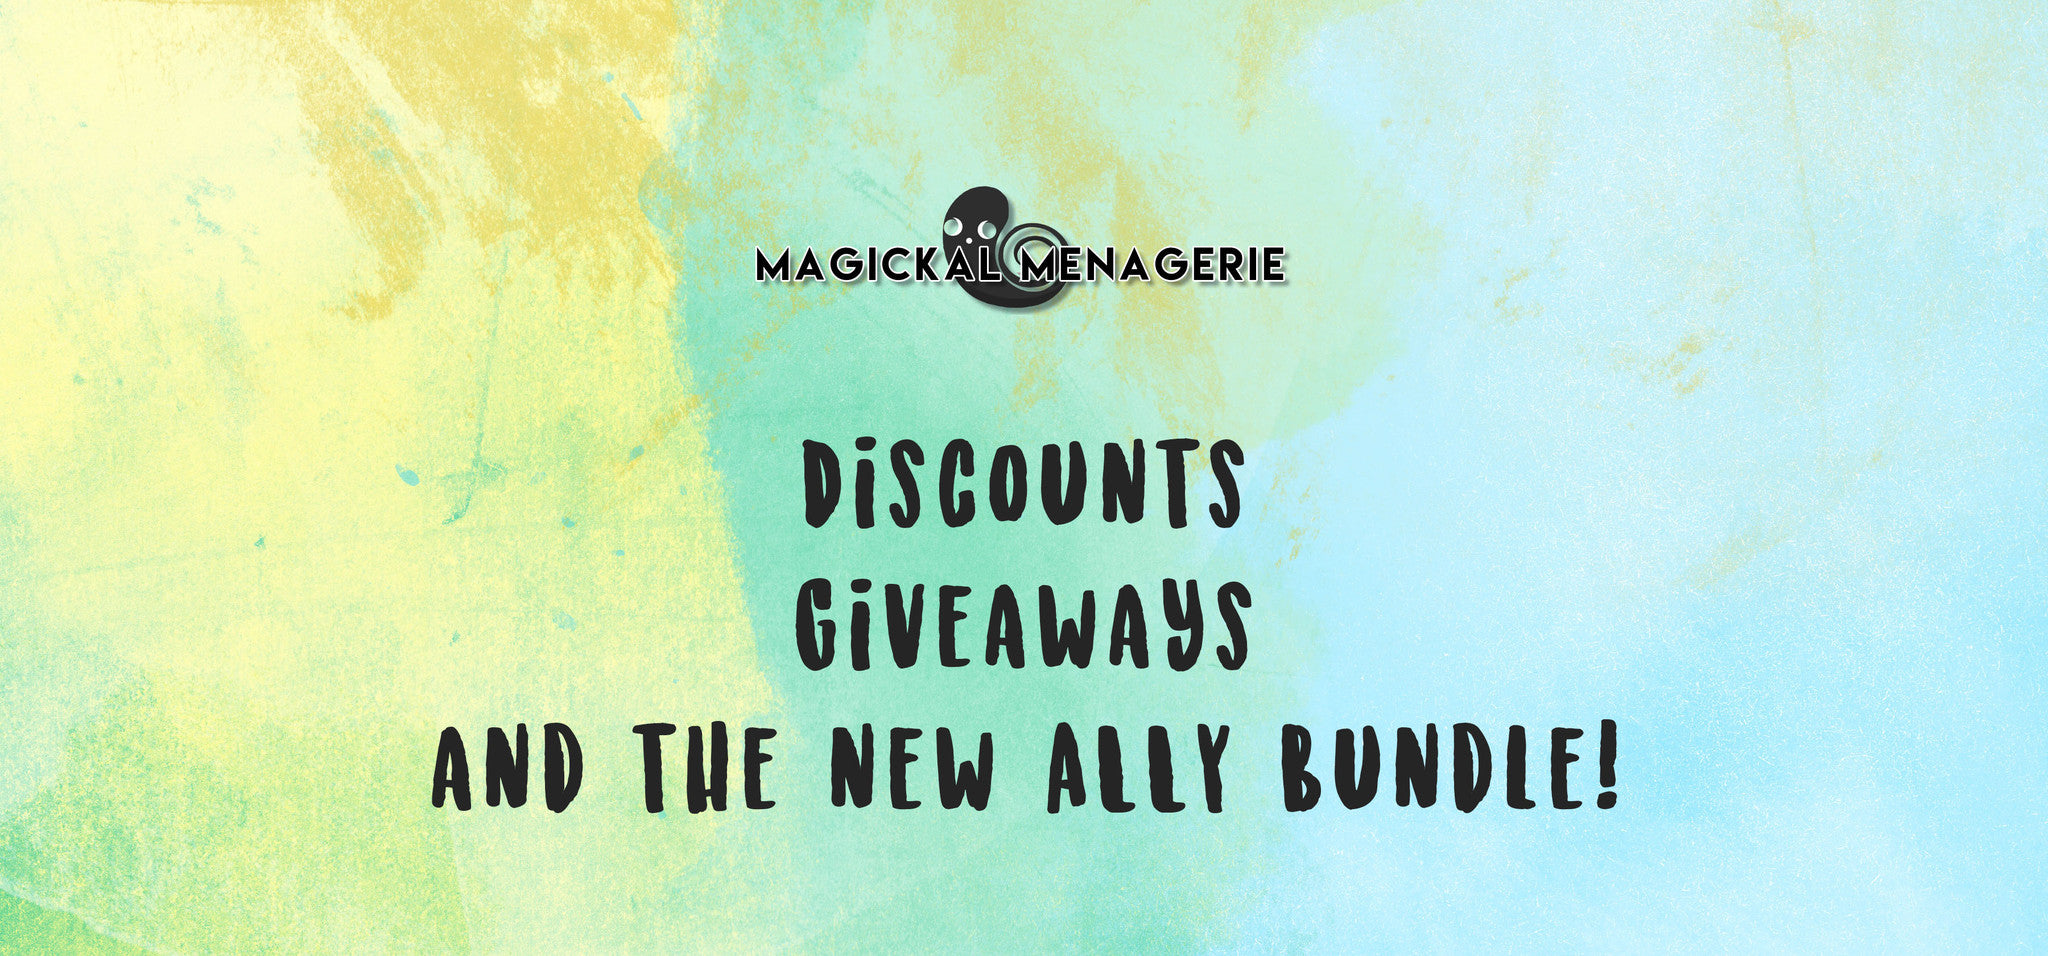 Discounts, Contest, and ALLY!